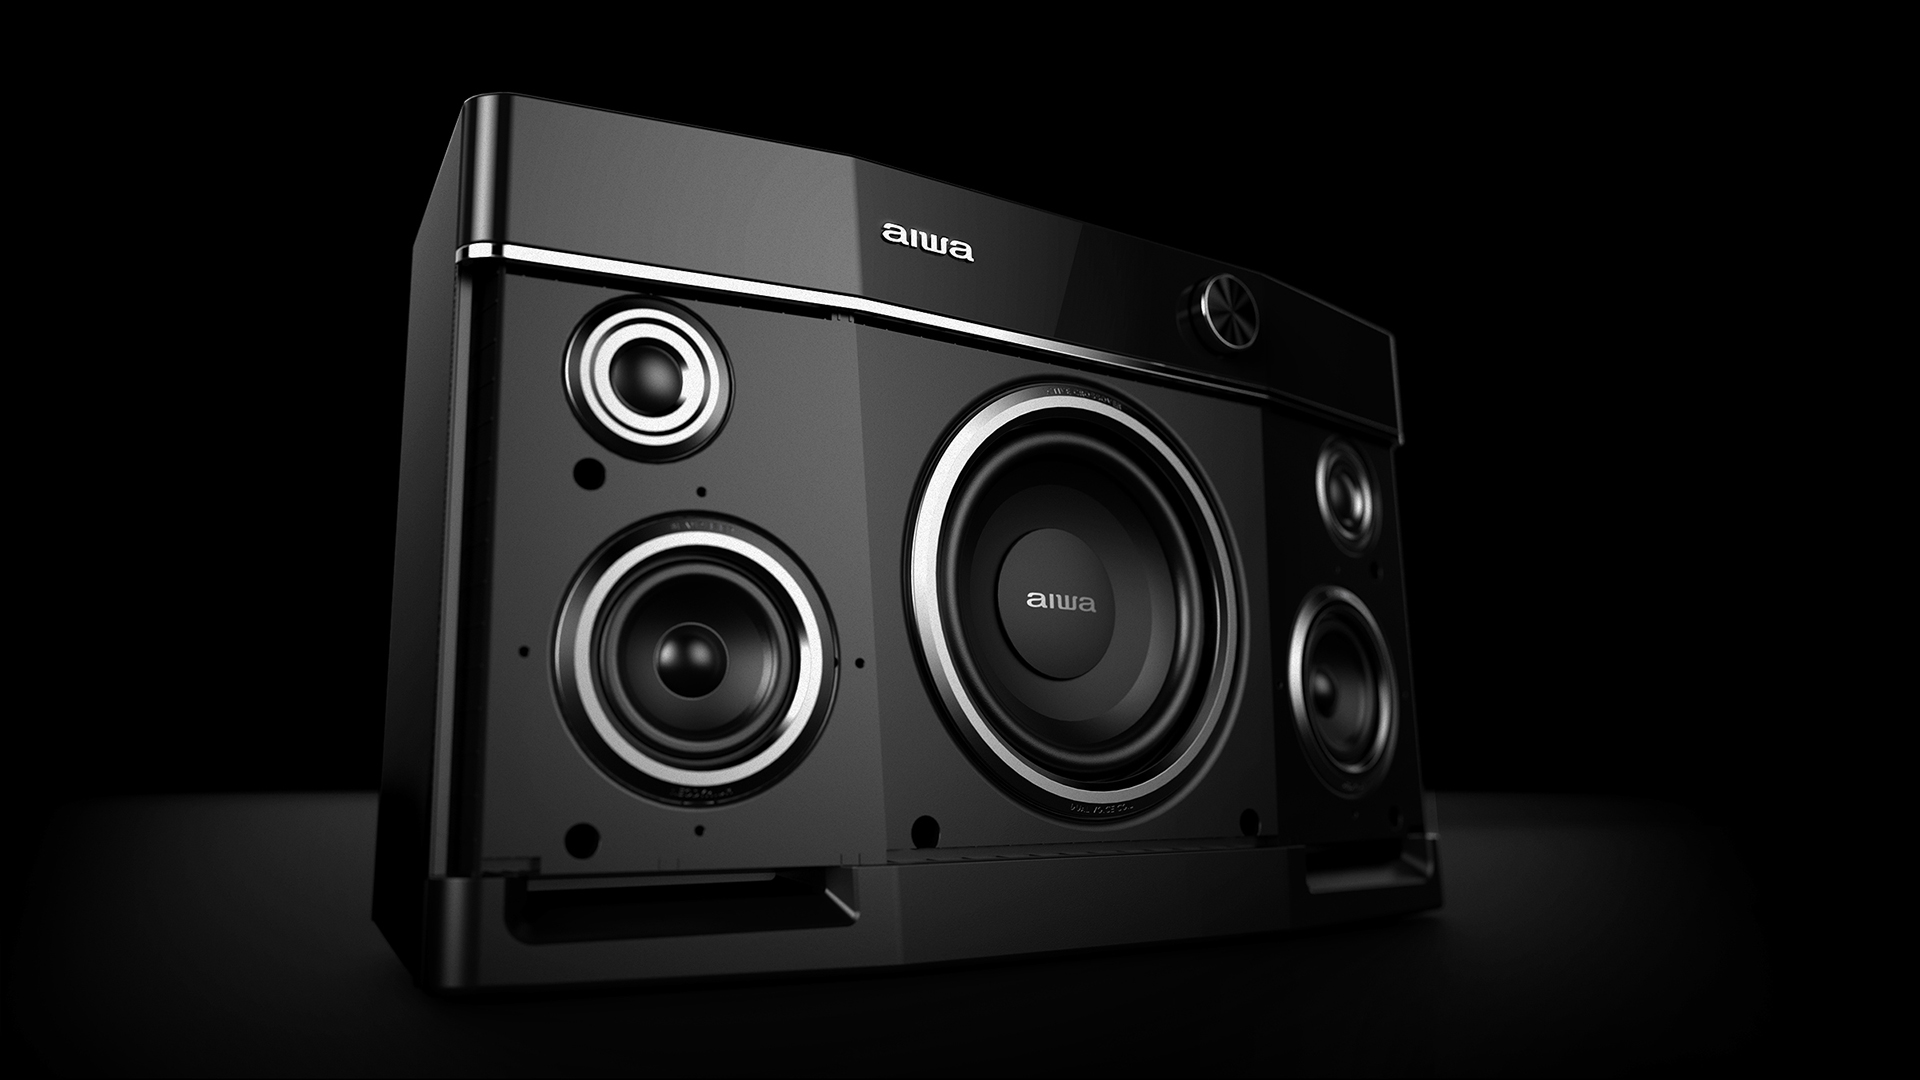 aiwa_industrial_product_design_process_020